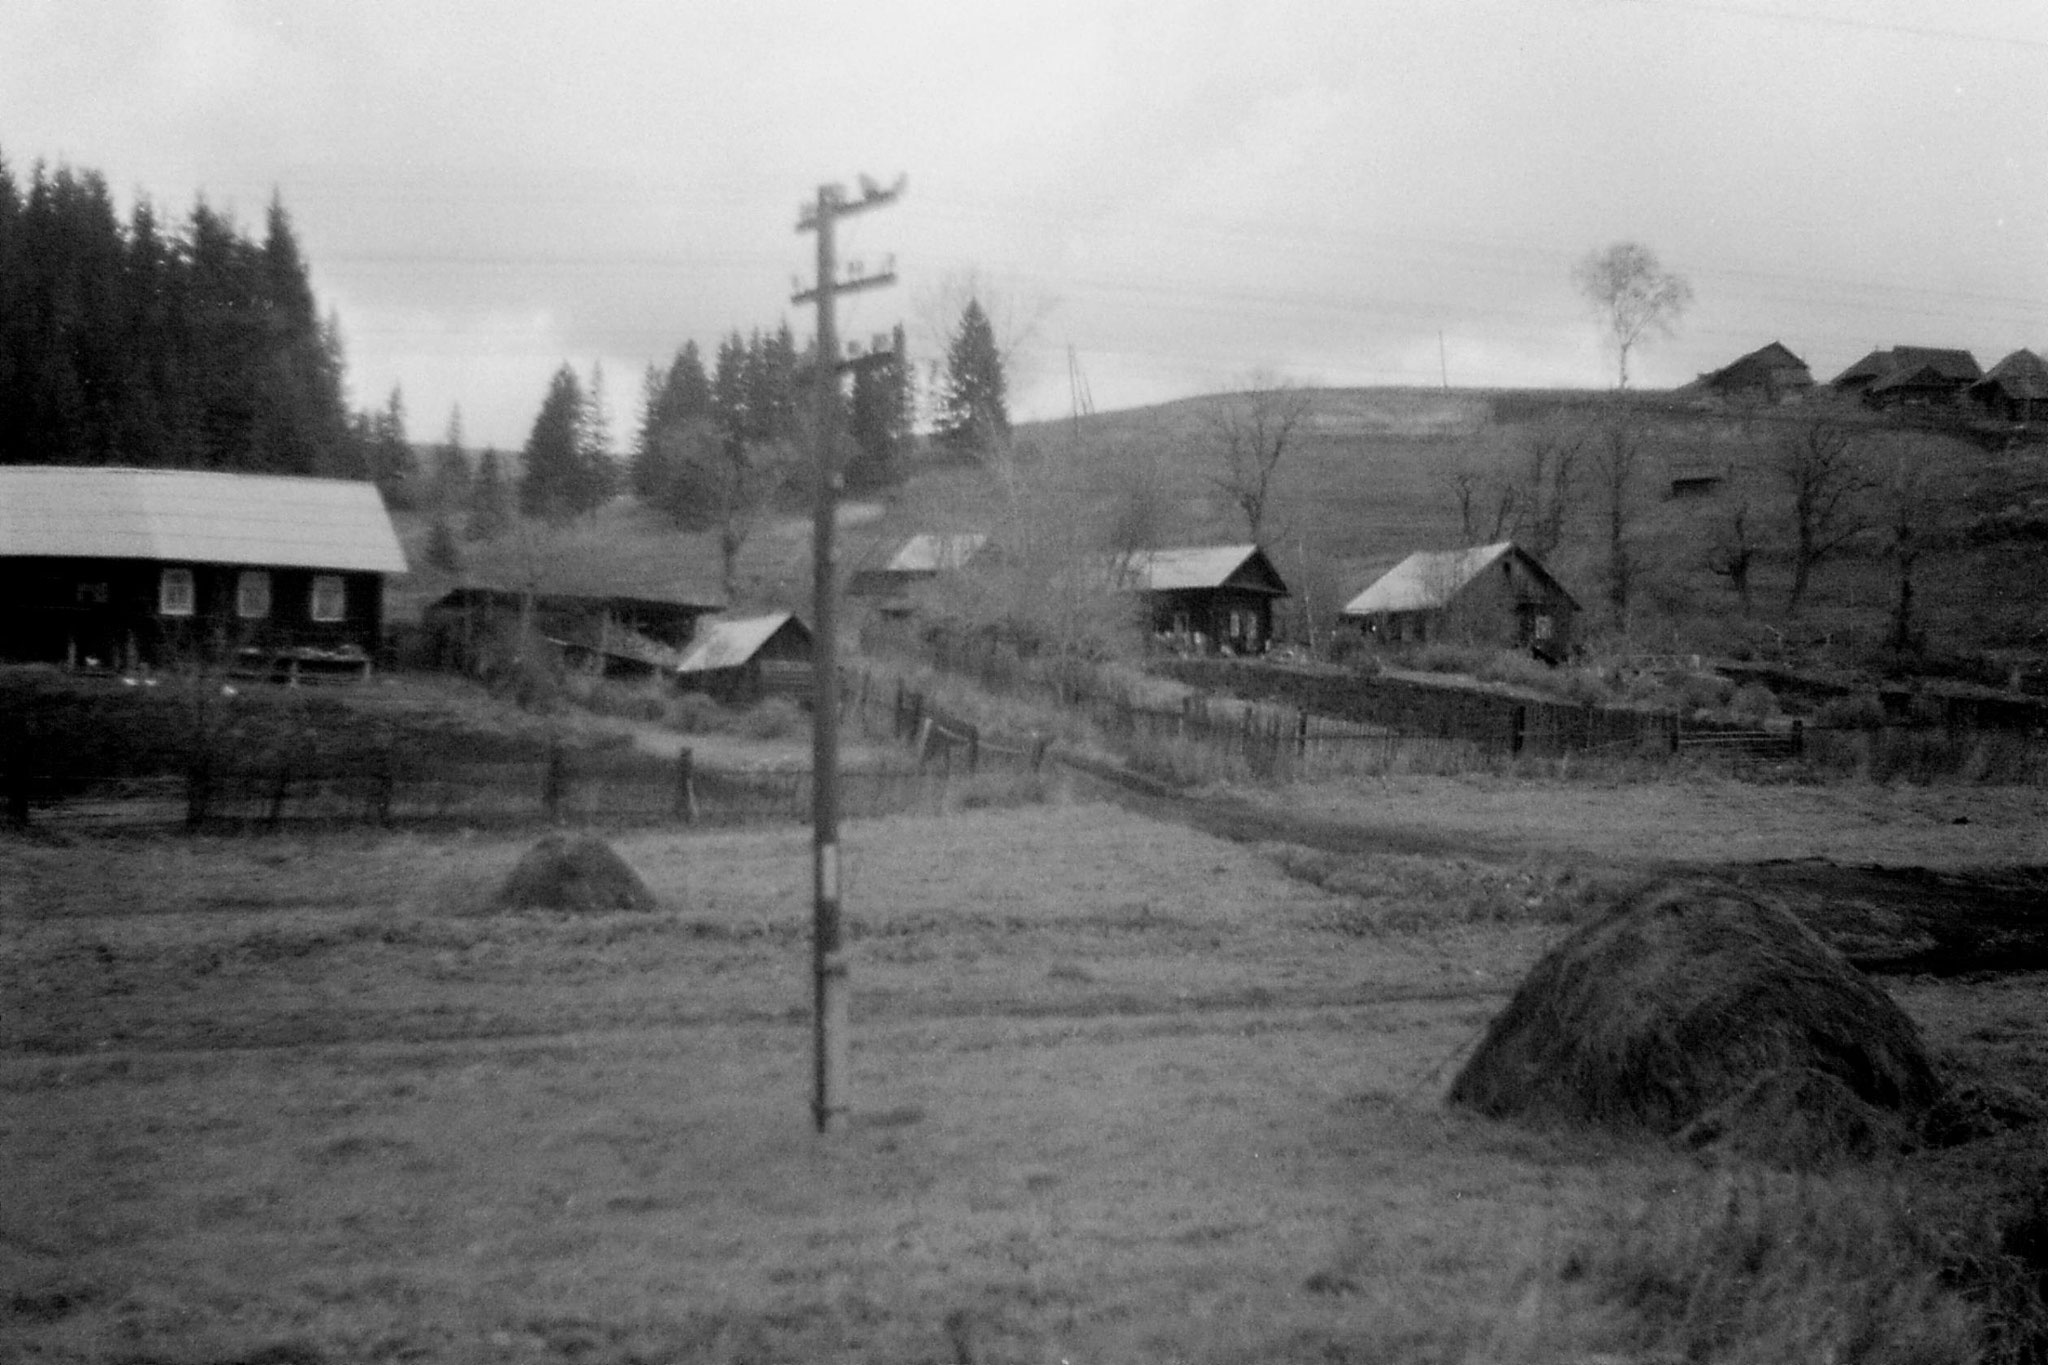 19/10/1988: 26: from Siberian Express between Balezino and Perm